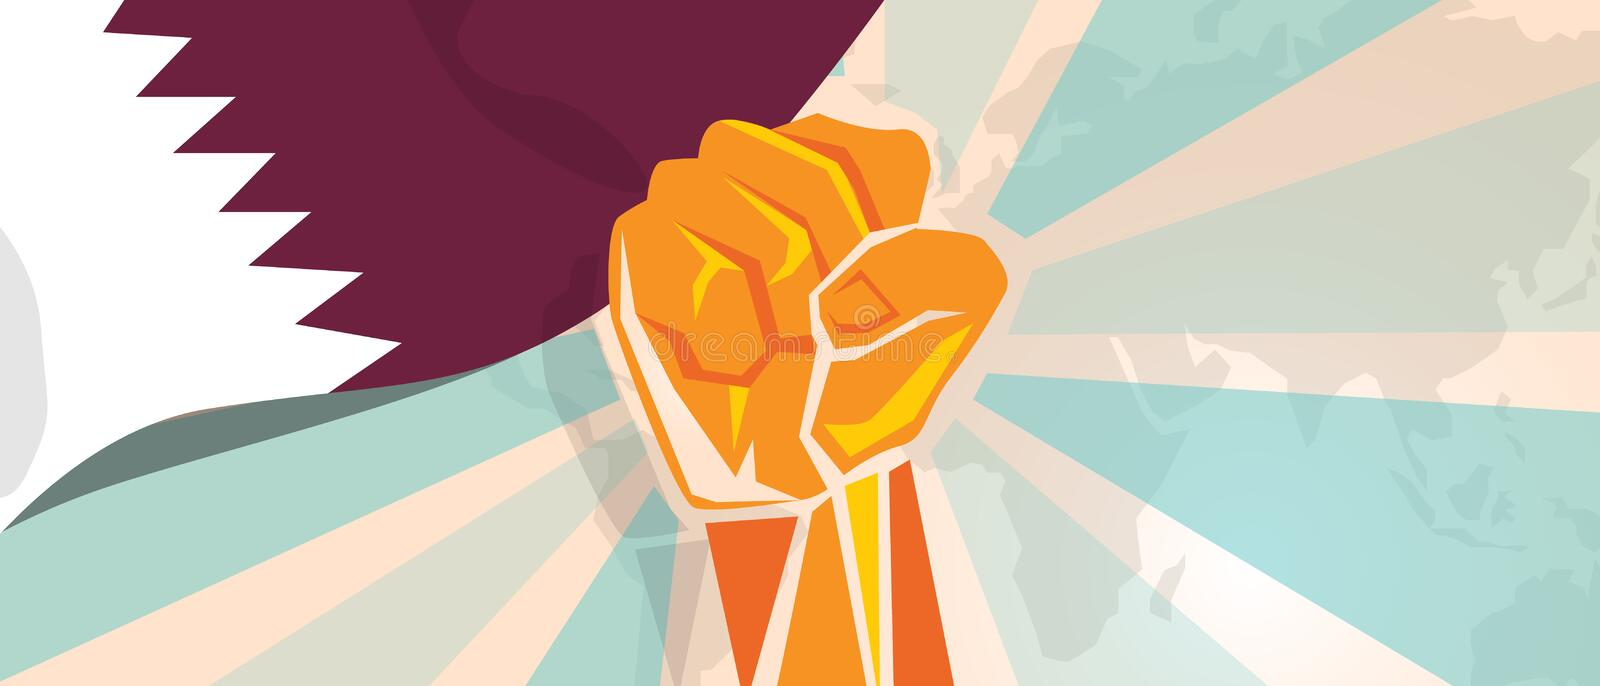 Qatar propaganda poster fight and protest independence struggle rebellion show symbolic strength with hand fist royalty free illustration